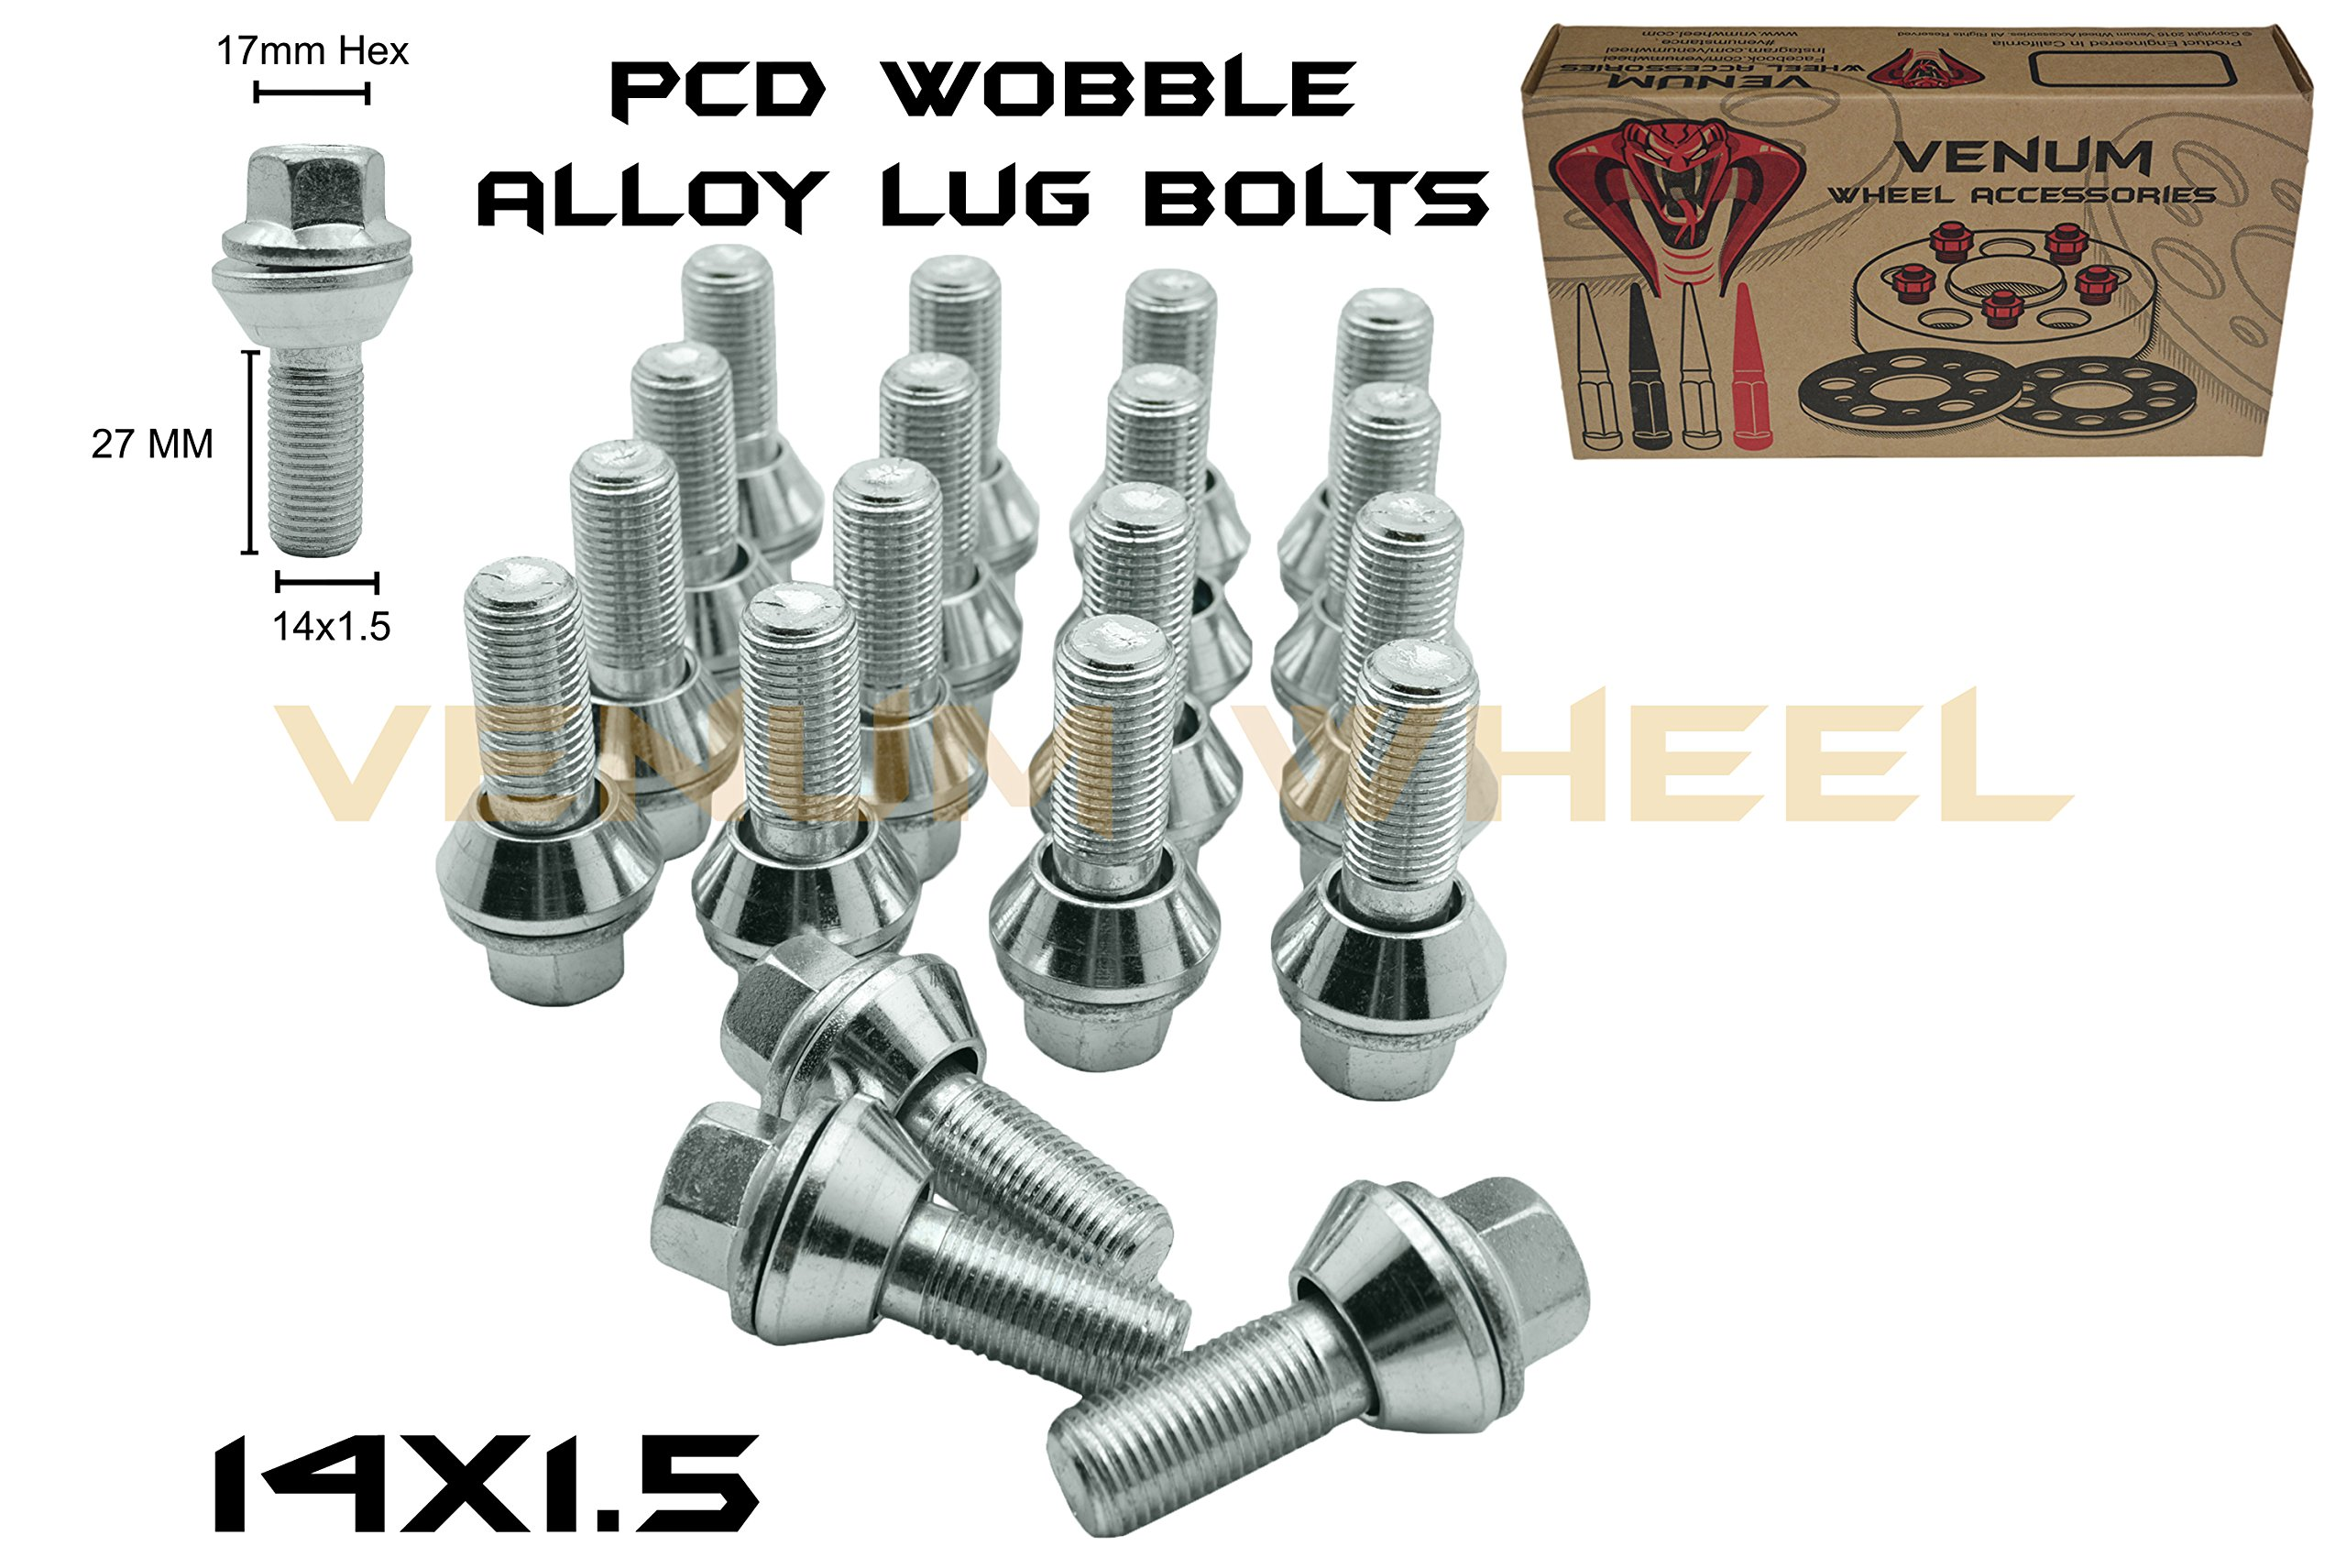 14x1.5 Zinc PCD Variation Wobble Wobbly Alloy Wheel Lug Bolts 1.2 Radius   27mm Shank   Fast Shipping Product Certified by Venum wheel accessories